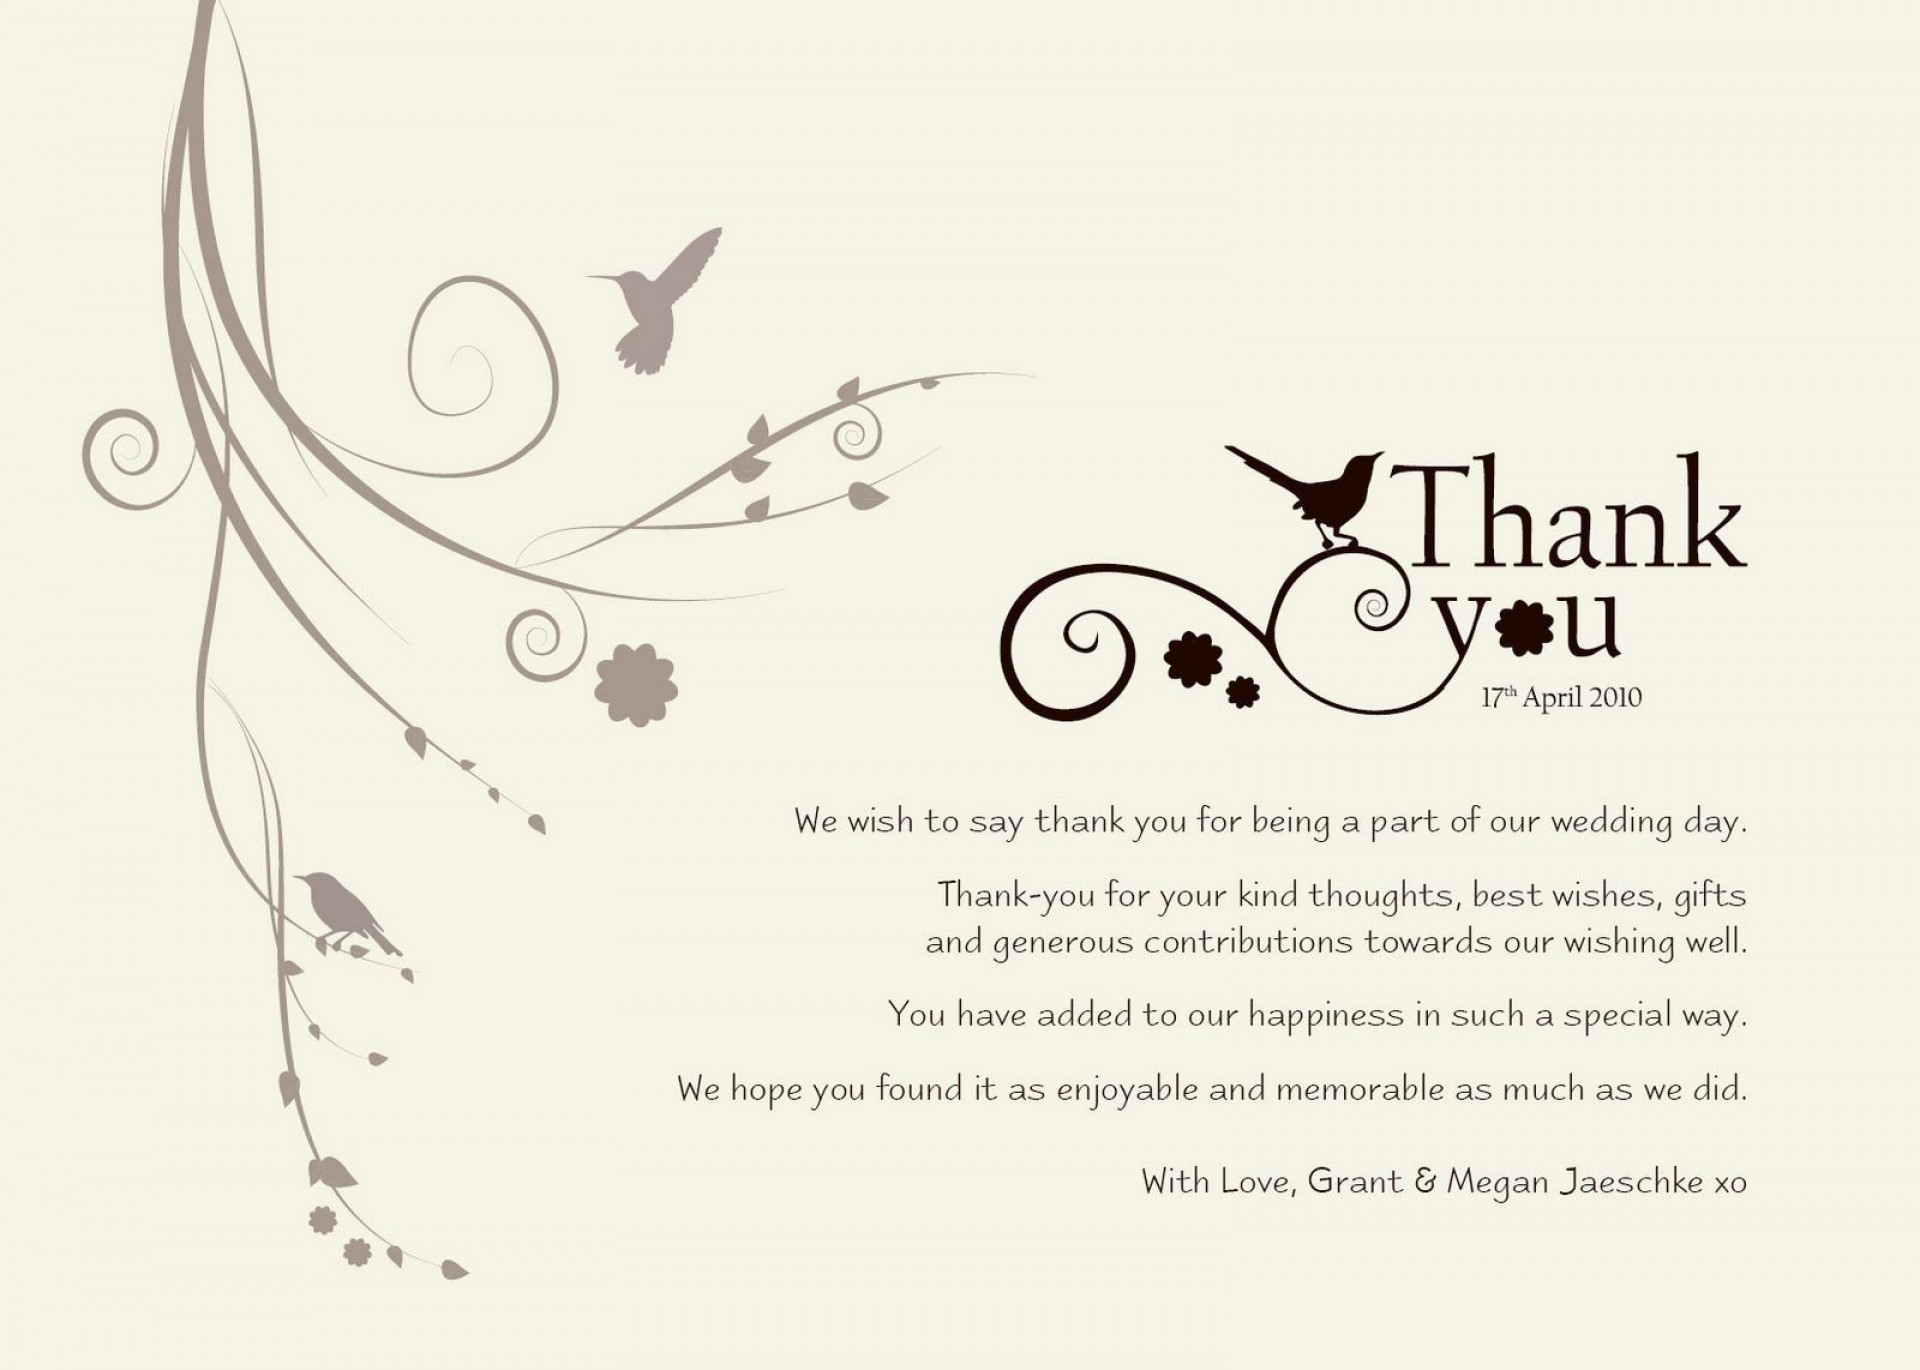 004 Magnificent Thank You Note Template Wedding Money Concept  Card Example For Sample Cash Gift1920